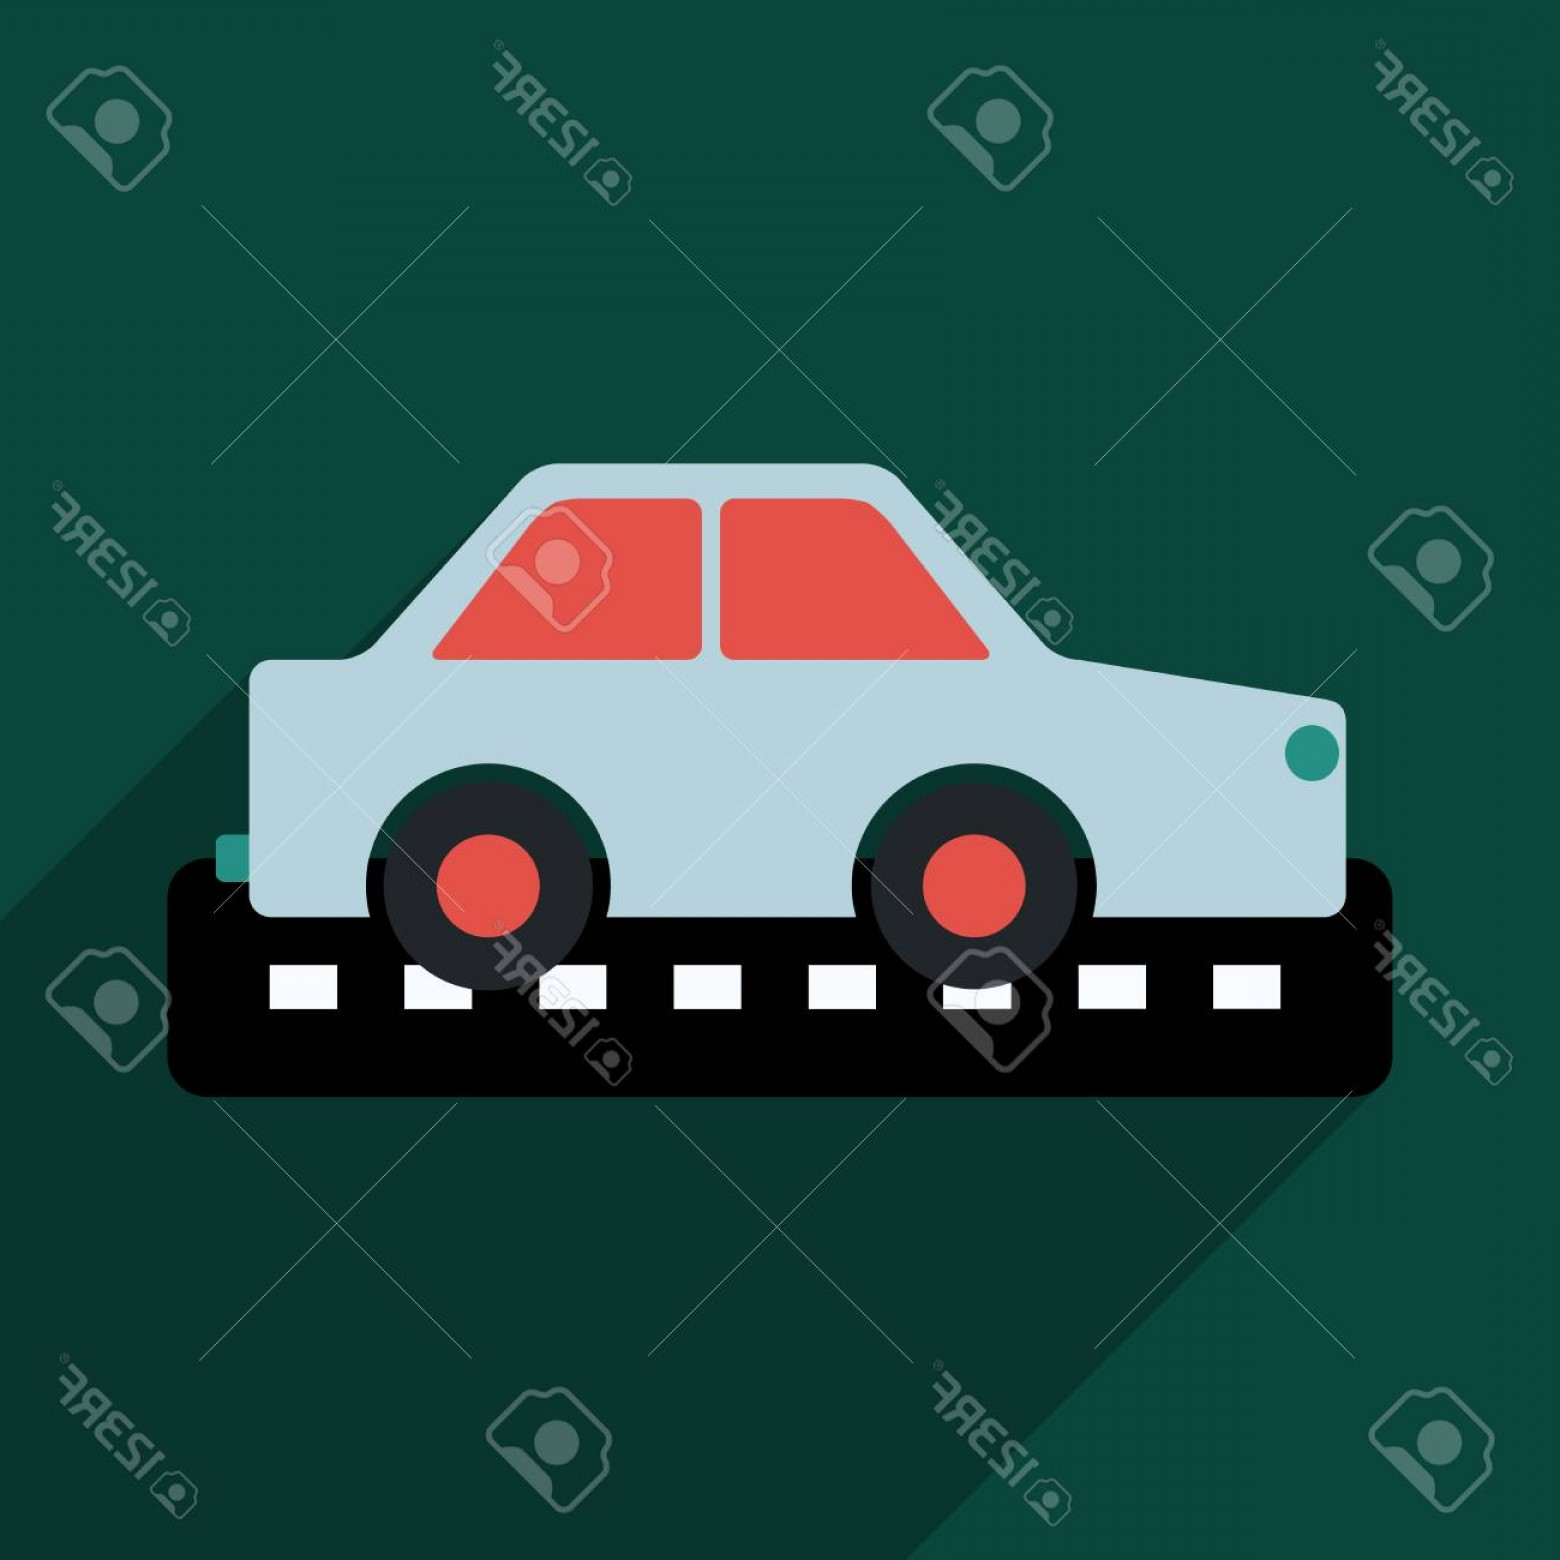 Taxi Checkers Vector: Photostock Vector Taxi Car Top View Icon Taxicab Sedan With Checker Top Light Box On Roof Flat Style Vector Illustrati